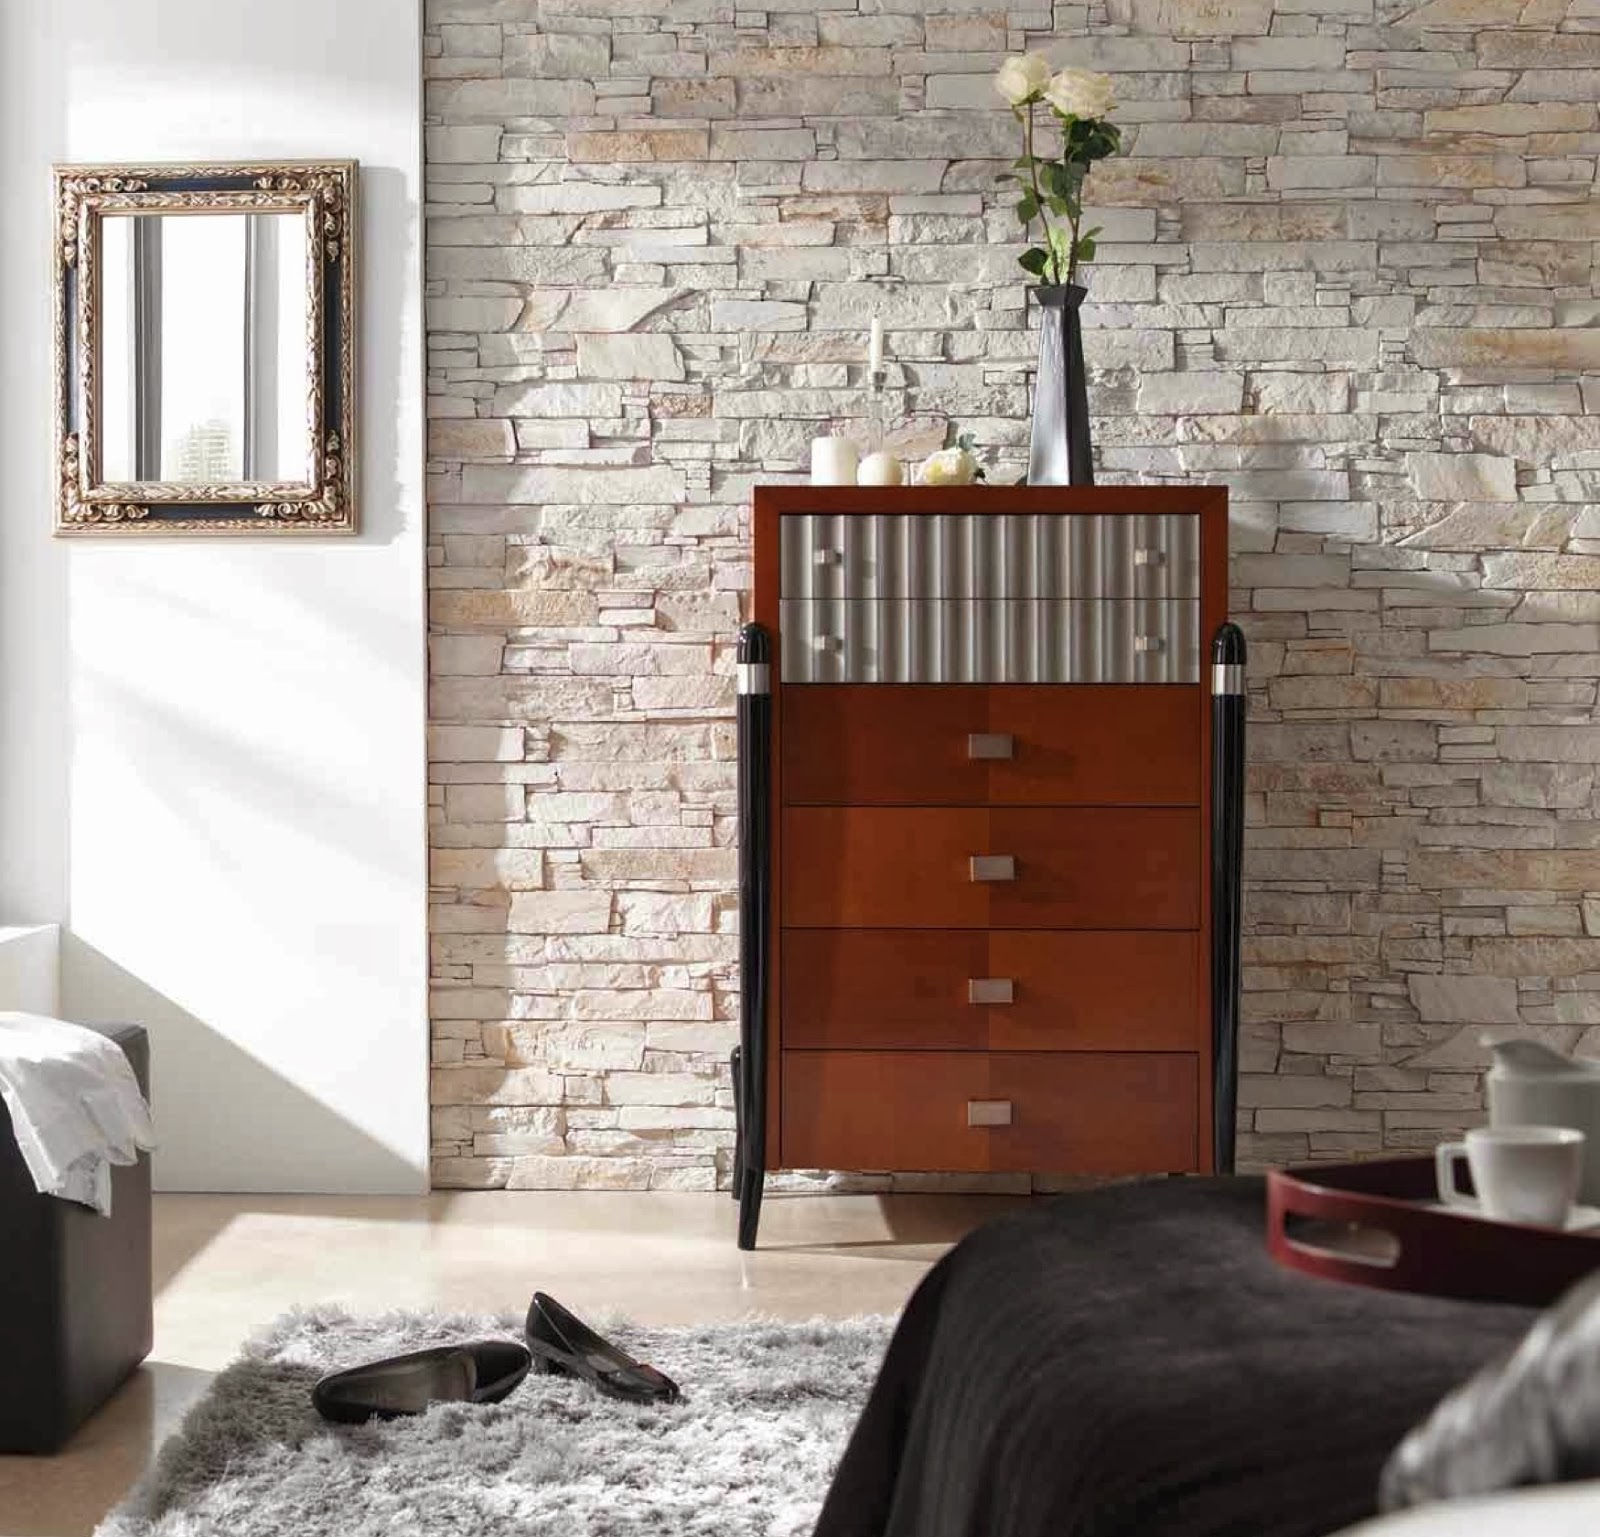 Fabulous Faux Contemporary Interior Wall Panels From Dreamwall The Designer Knowledge